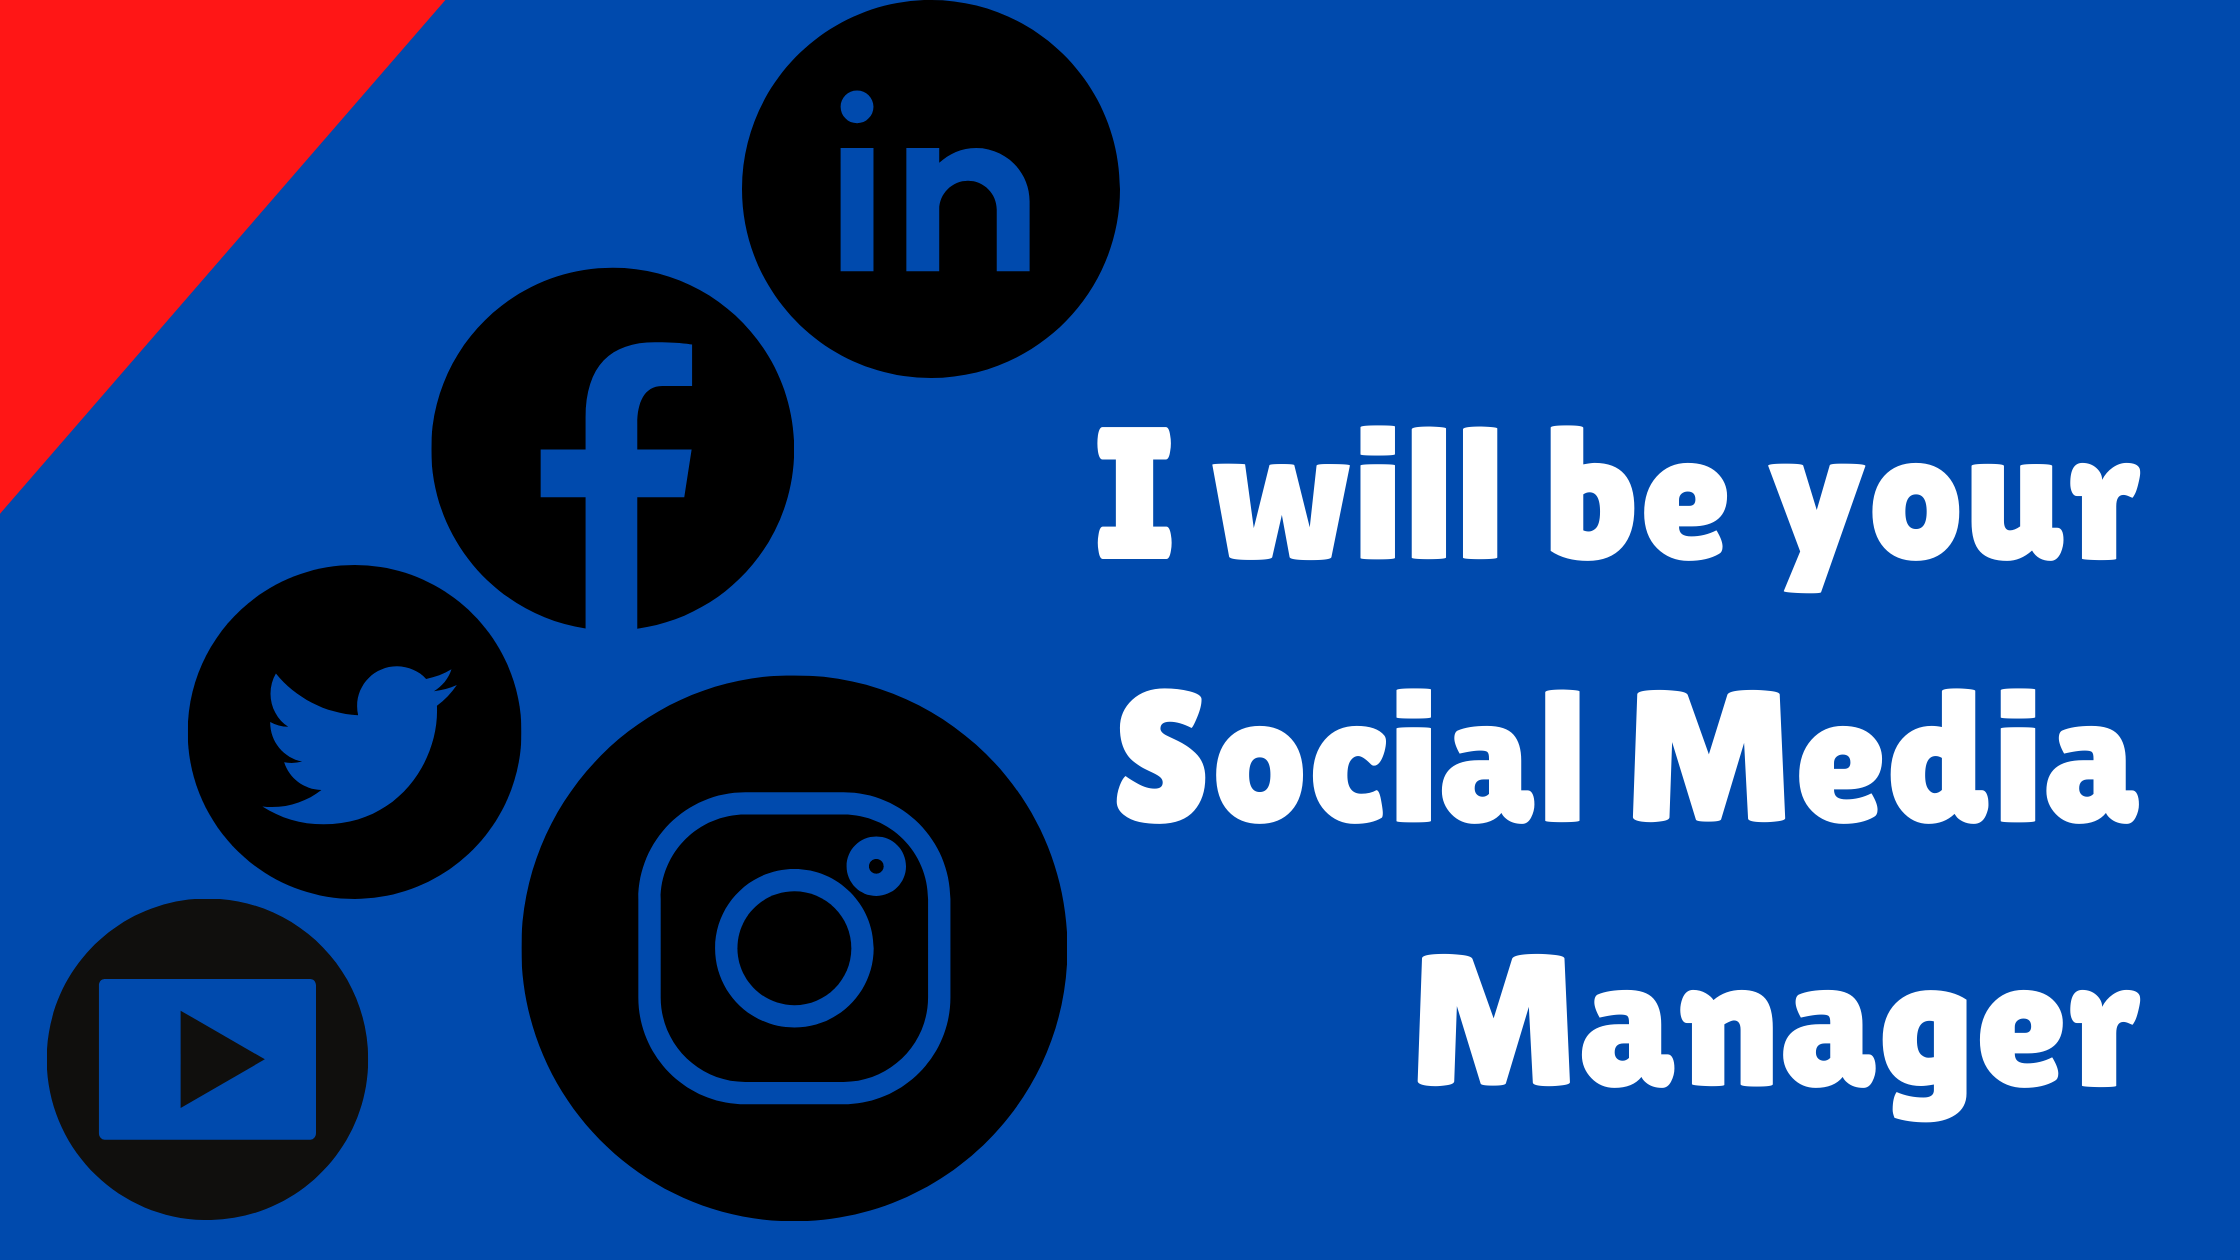 I will be your social media manager I will post two banner everyday on any 3 social media platform